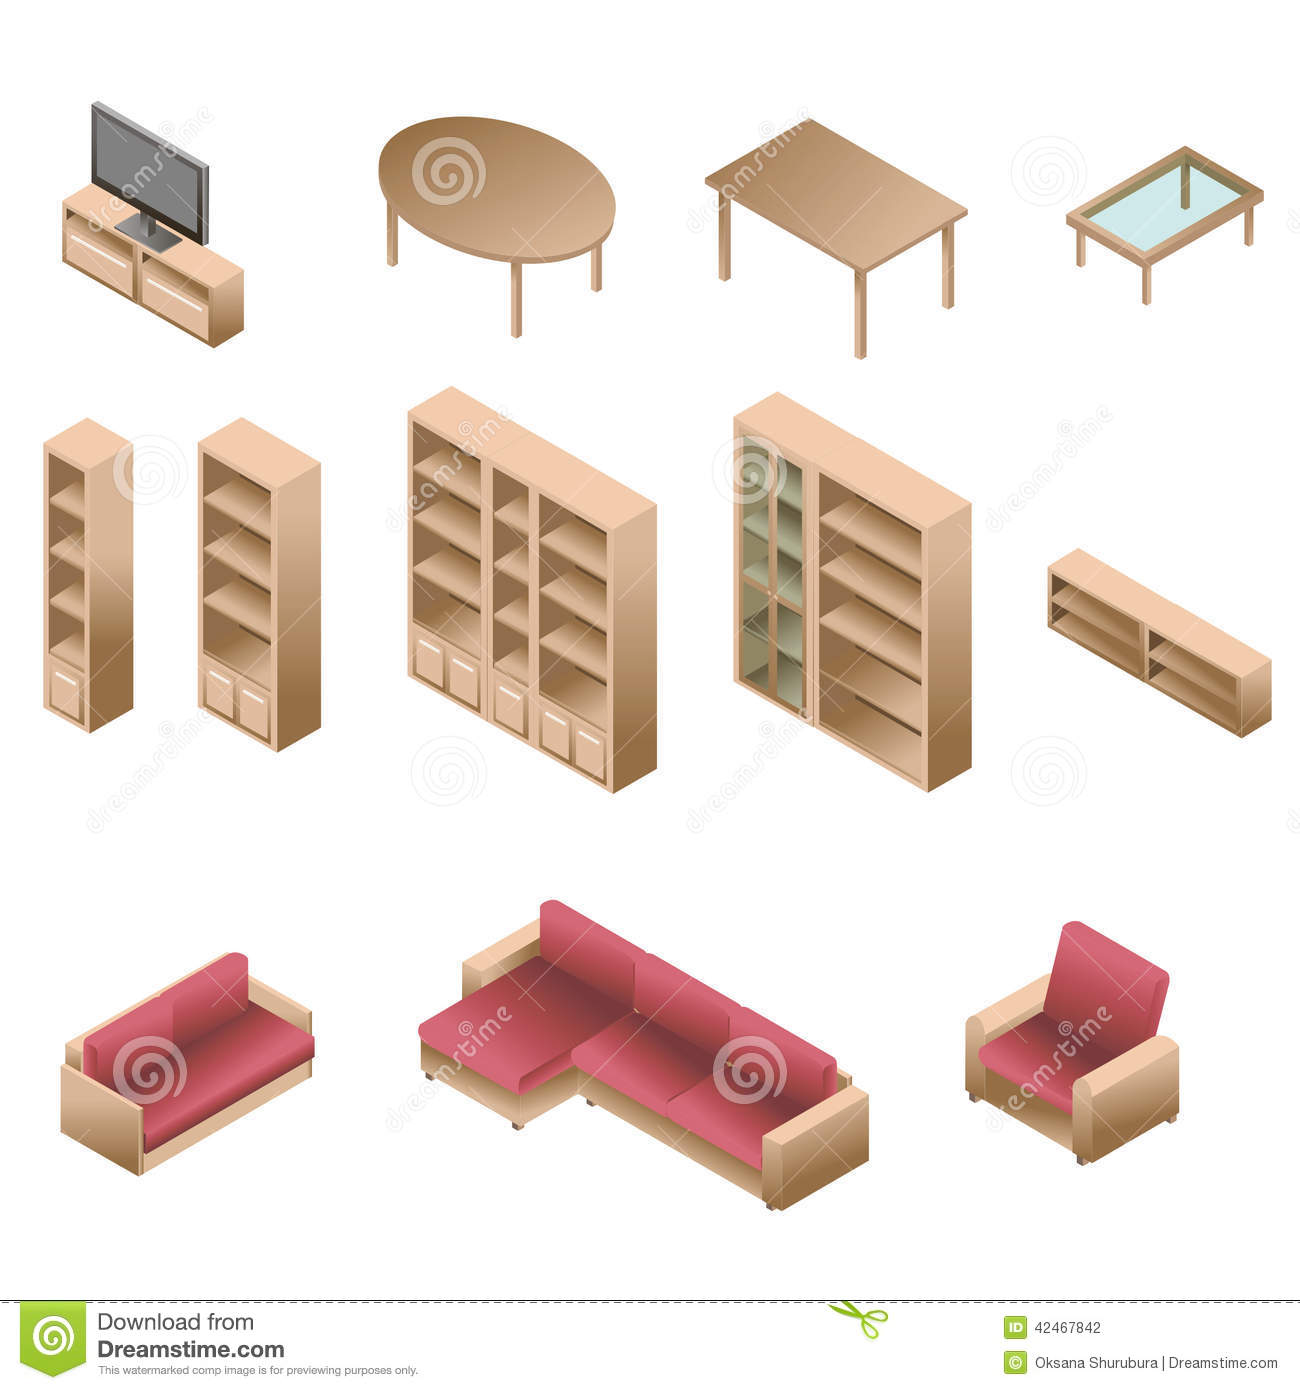 Wooden Furniture For Living Room Isometric Wooden Furniture For Living Room Stock Vector Image